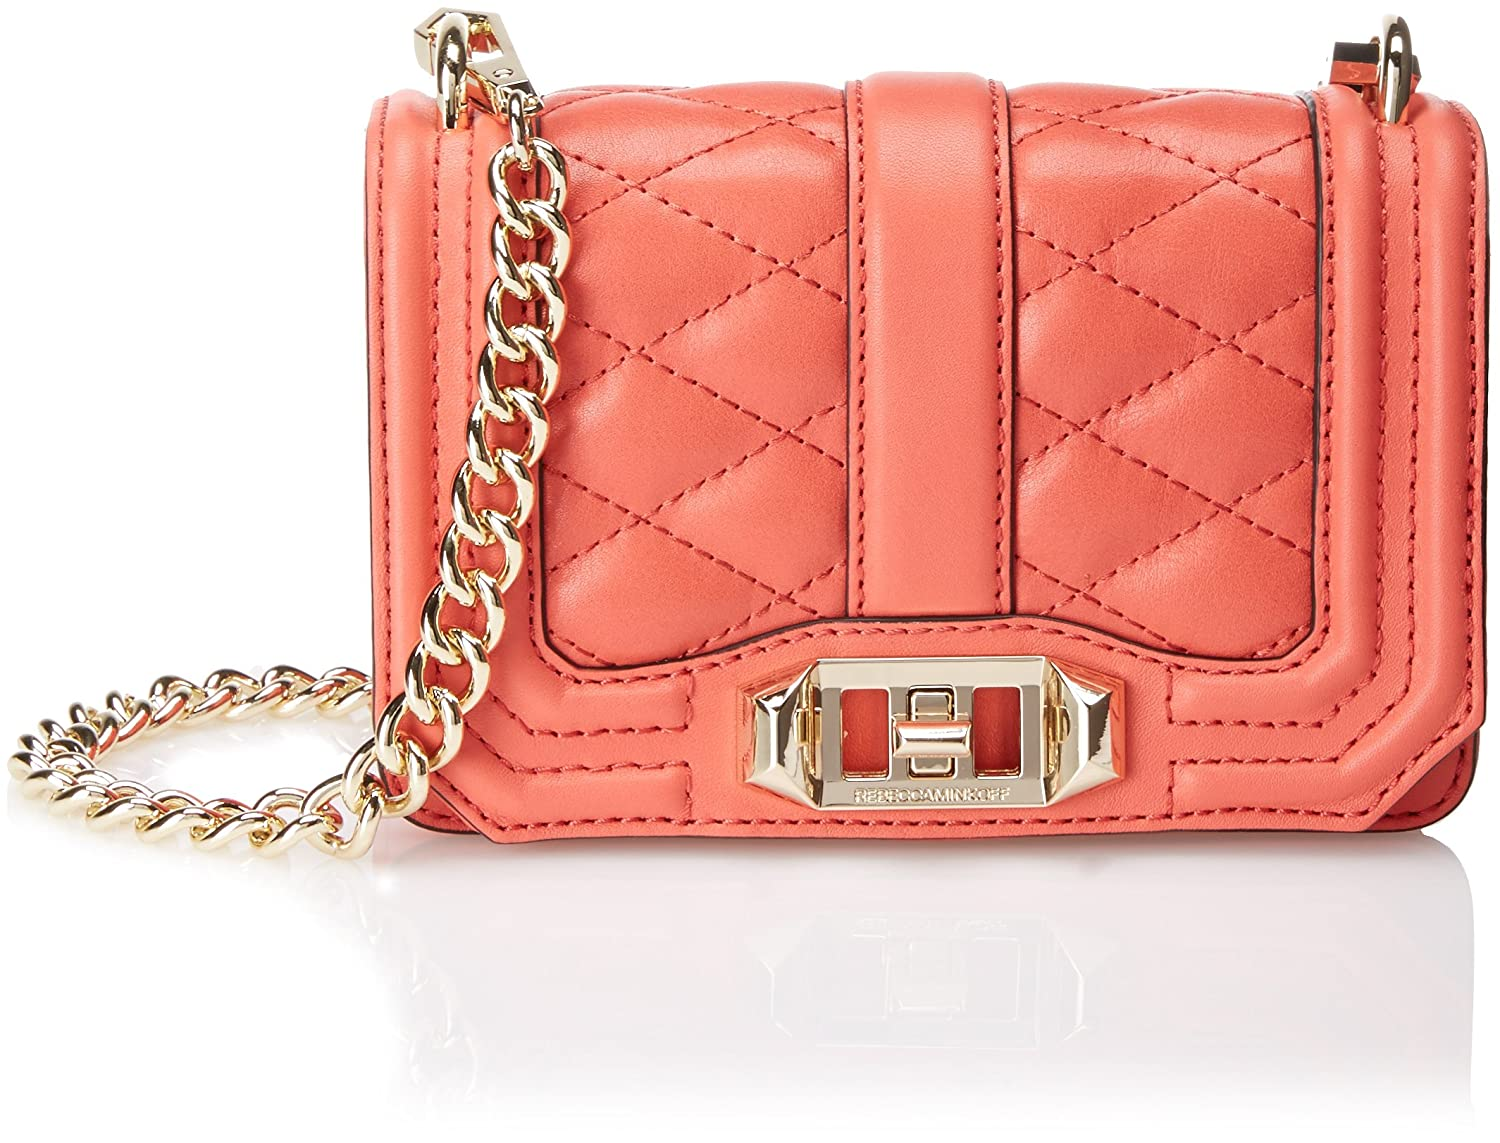 Rebecca Minkoff Mini Love Cross Body Bag